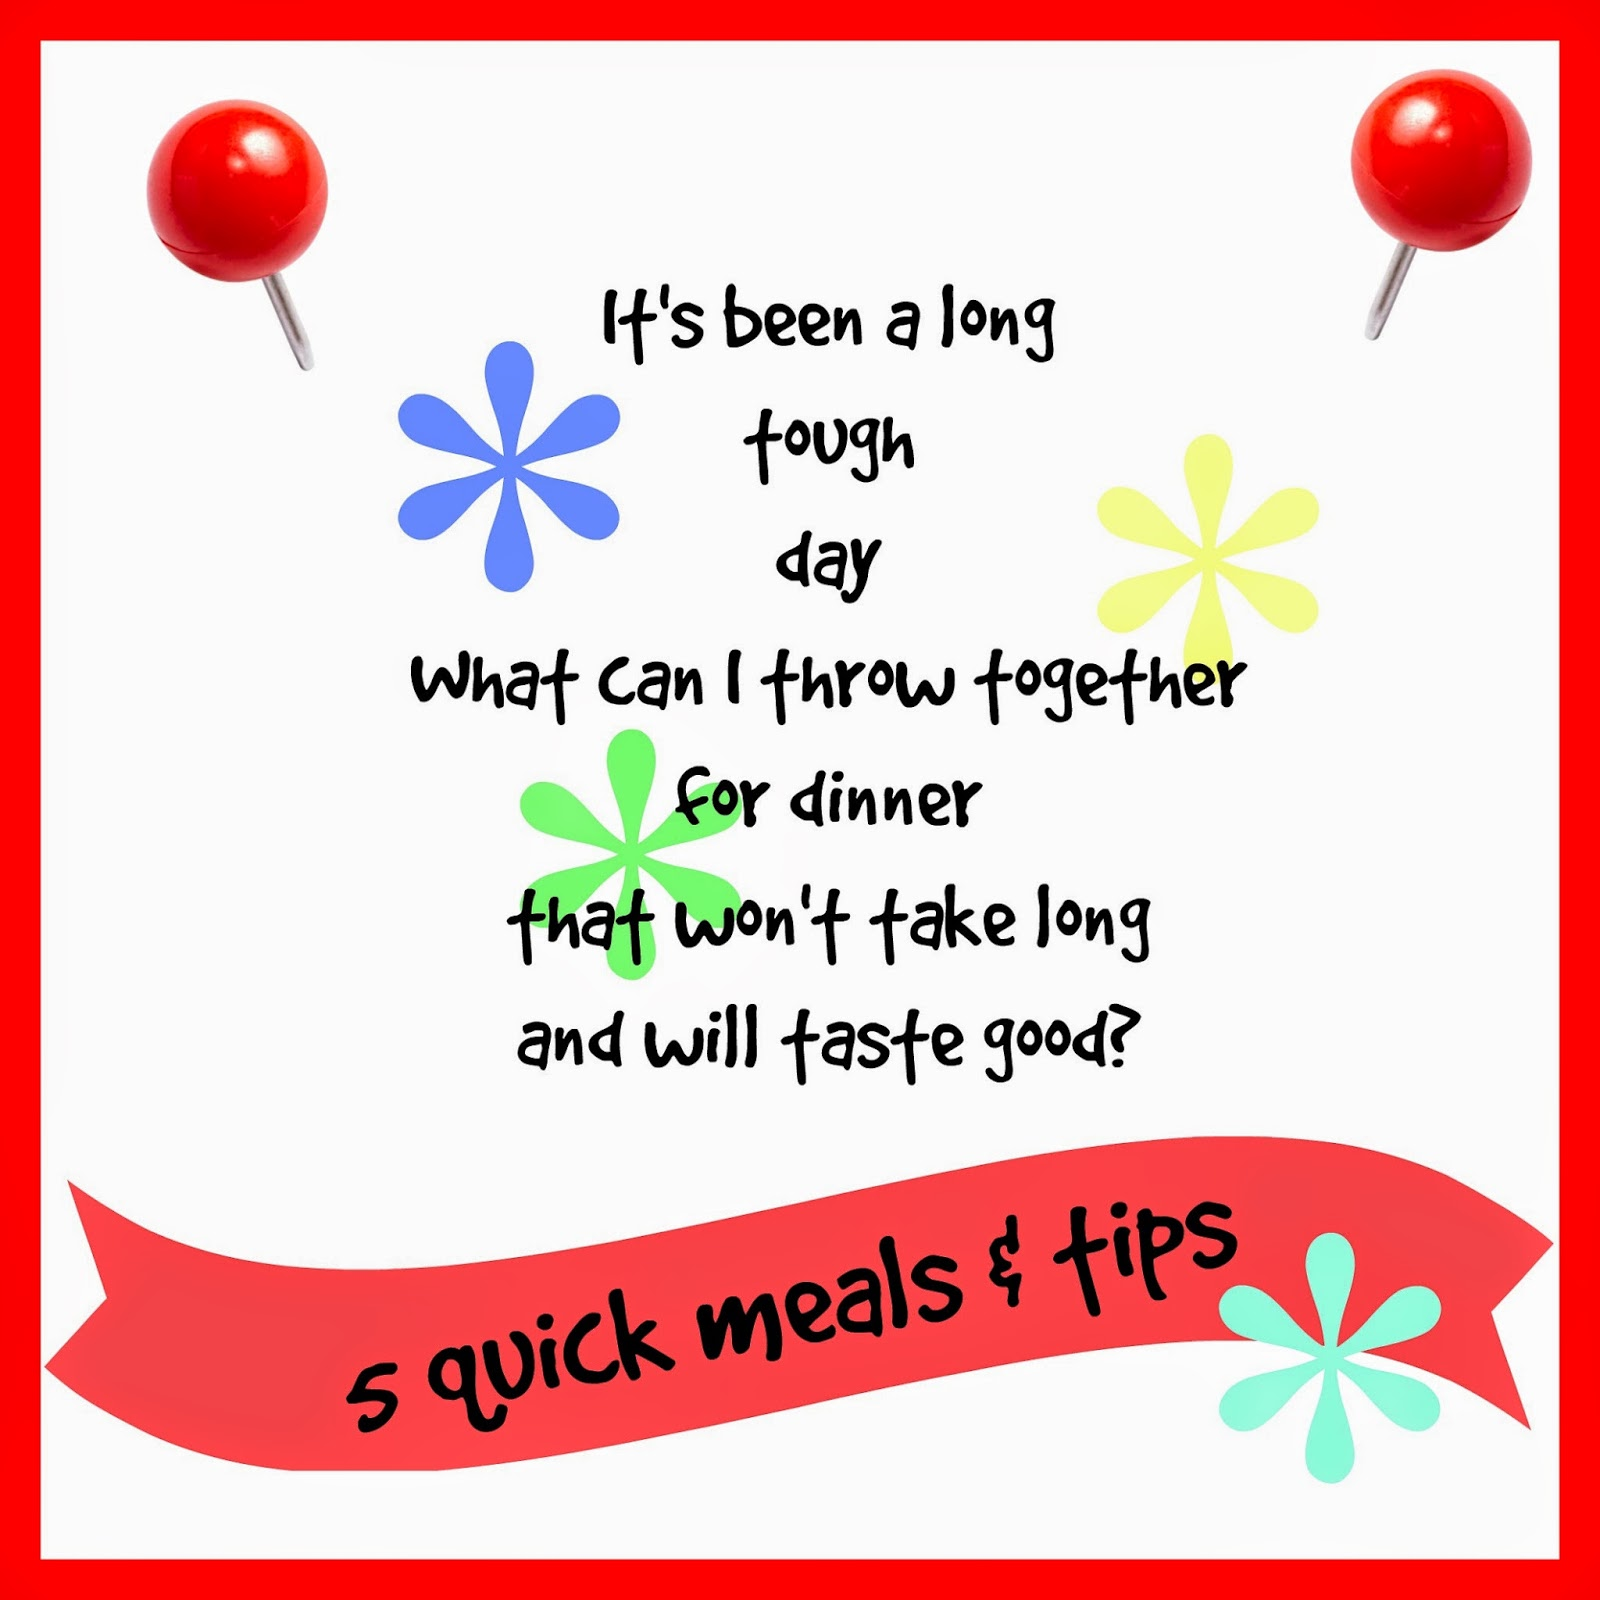 30 minute meals, quick meal tips, meal planning